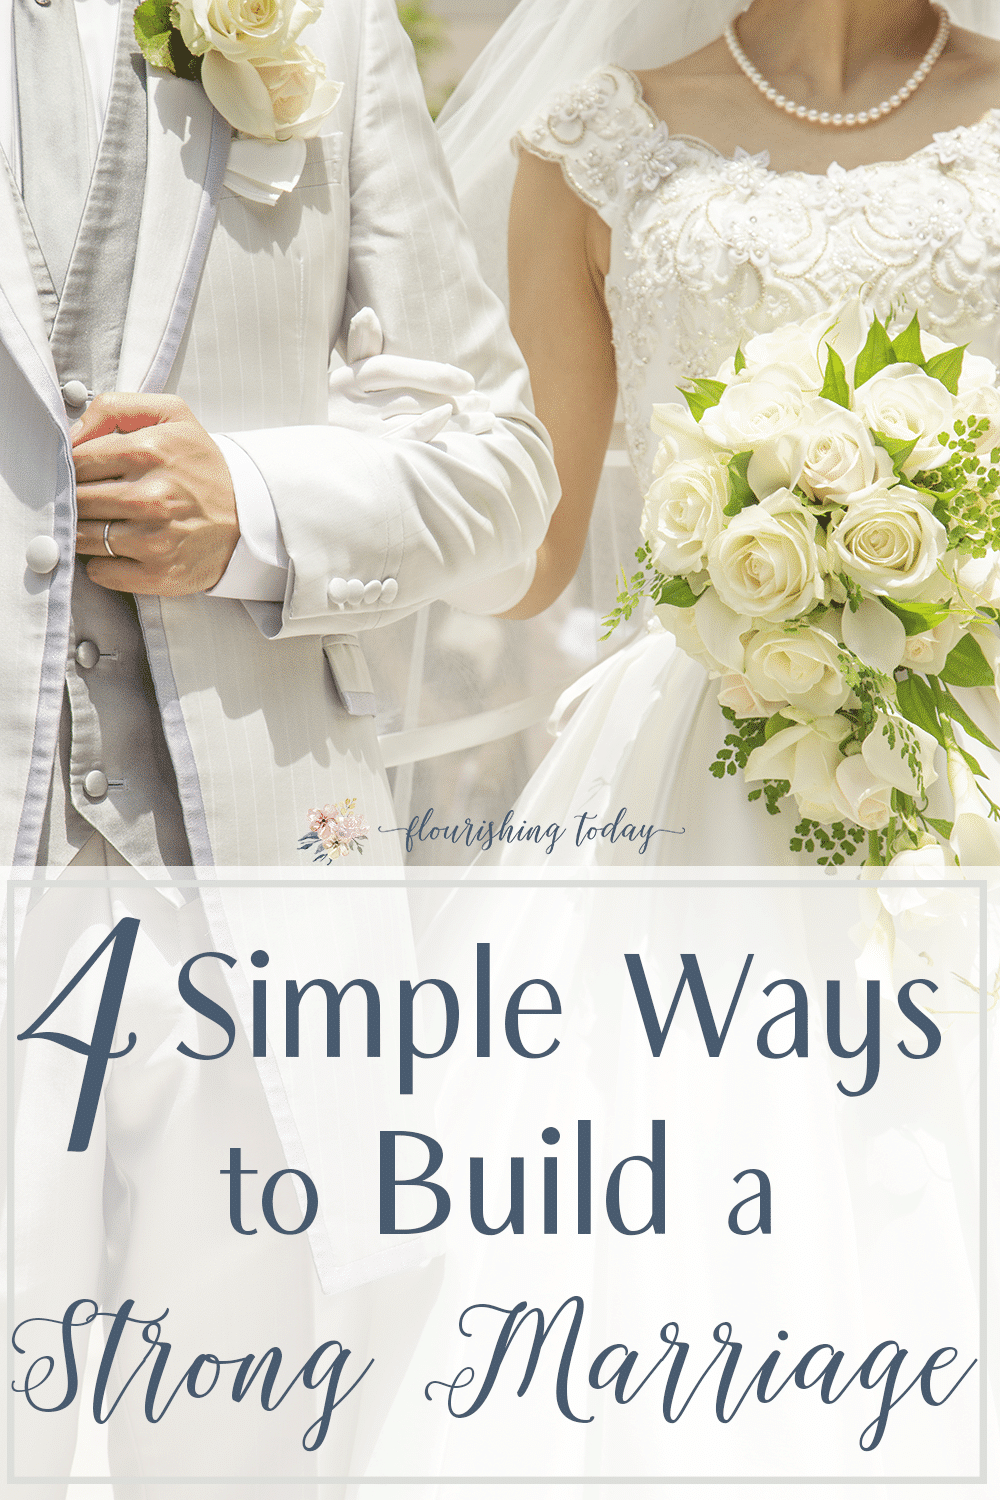 Do you want to build a strong marriage? Many times we want to invest in our marriage, but we aren't sure what to do. Here are 4 simple ways you can build a strong marriage that will last a lifetime. #marriage #marriedlife #freeprintable #married #together